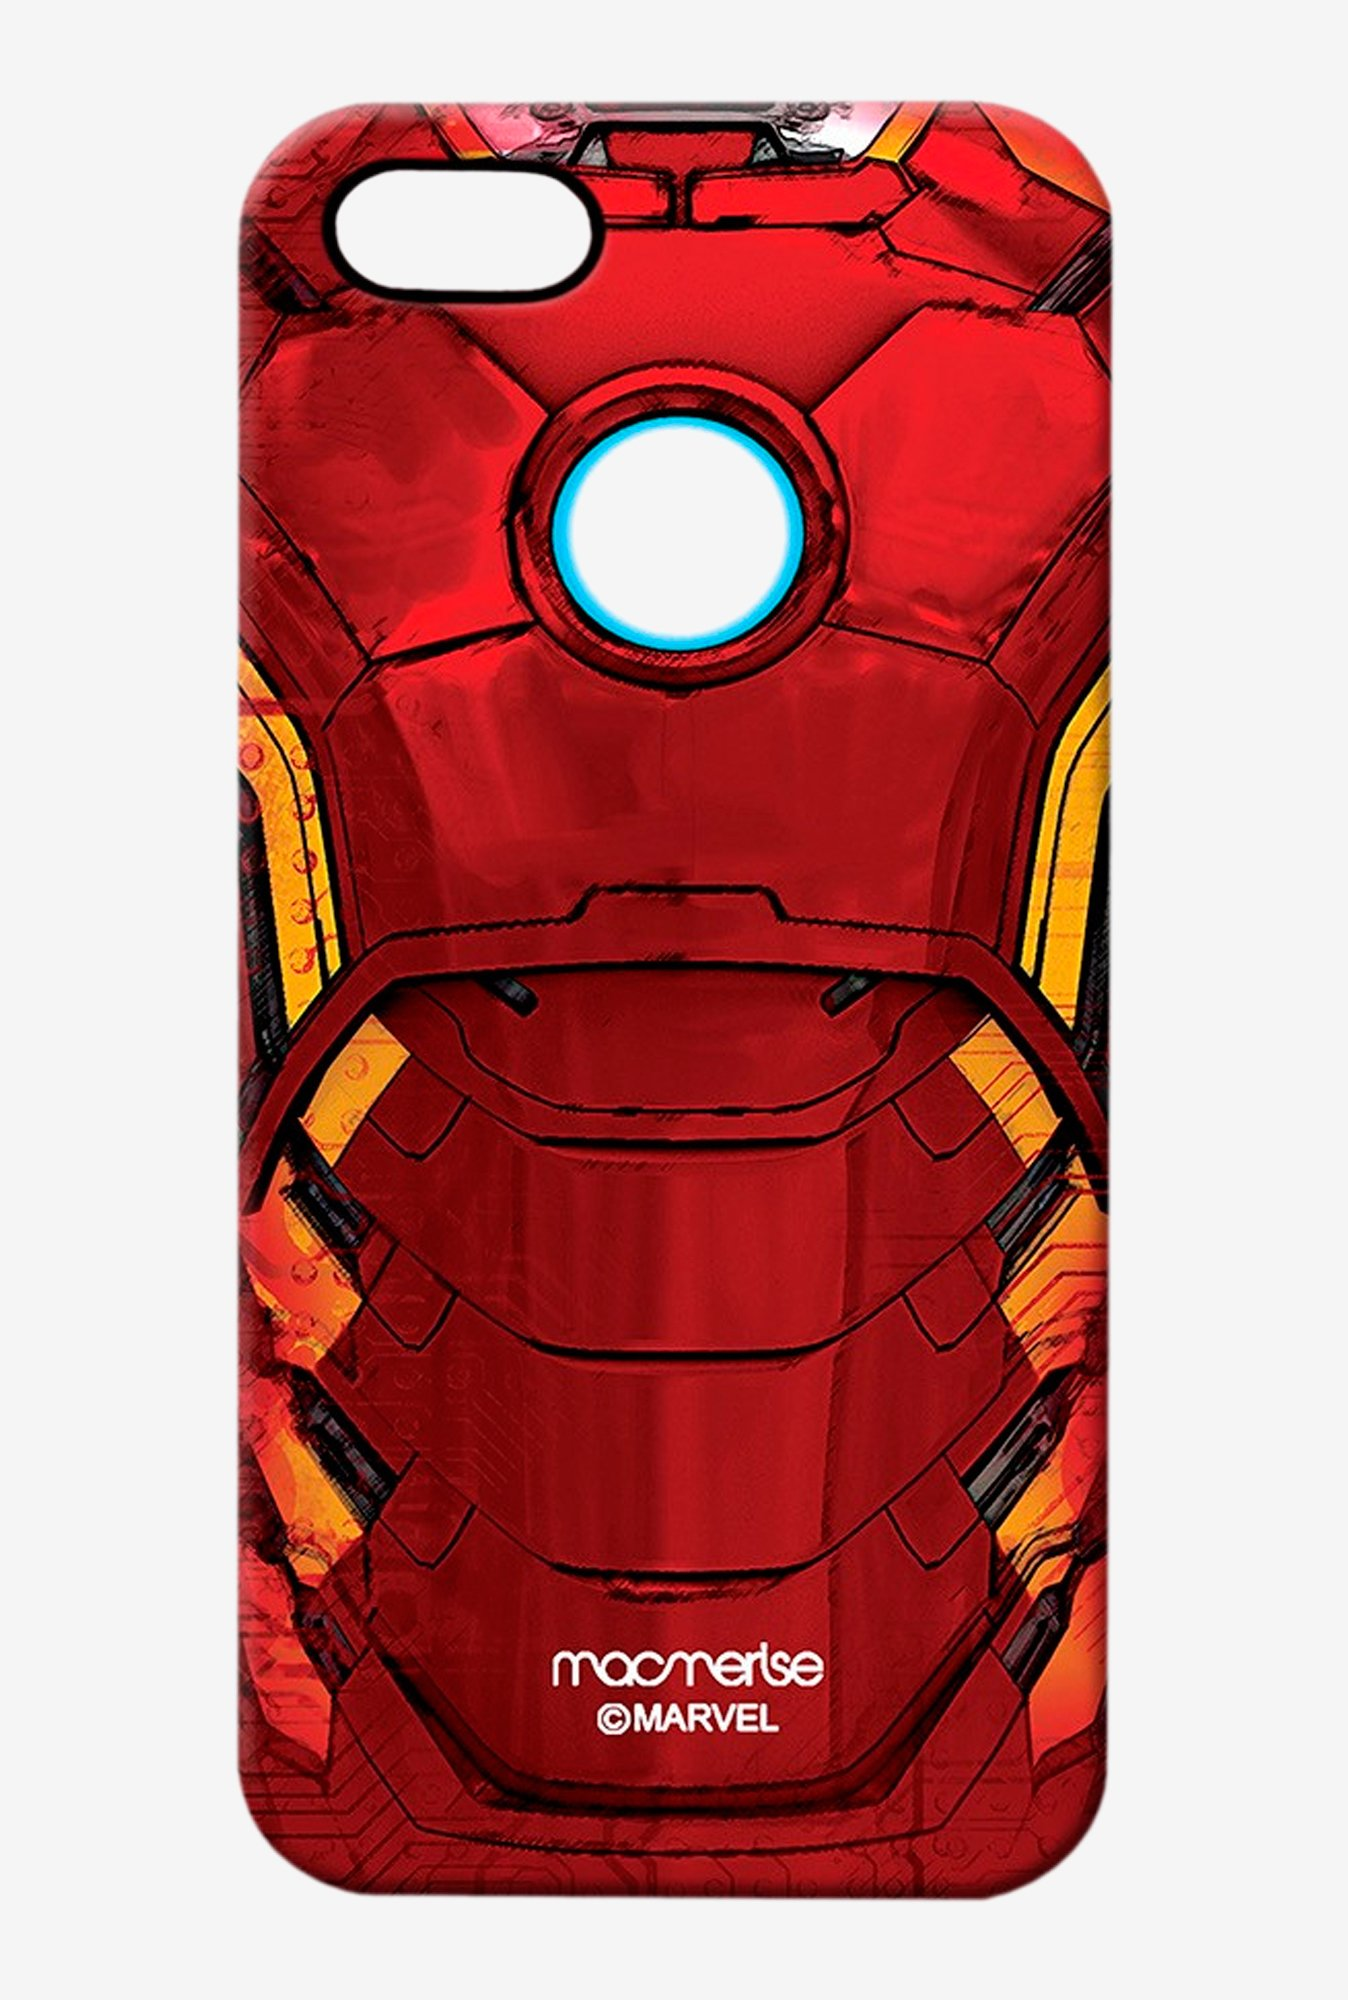 Macmerise Suit of Armour Pro Case for iPhone 5/5S